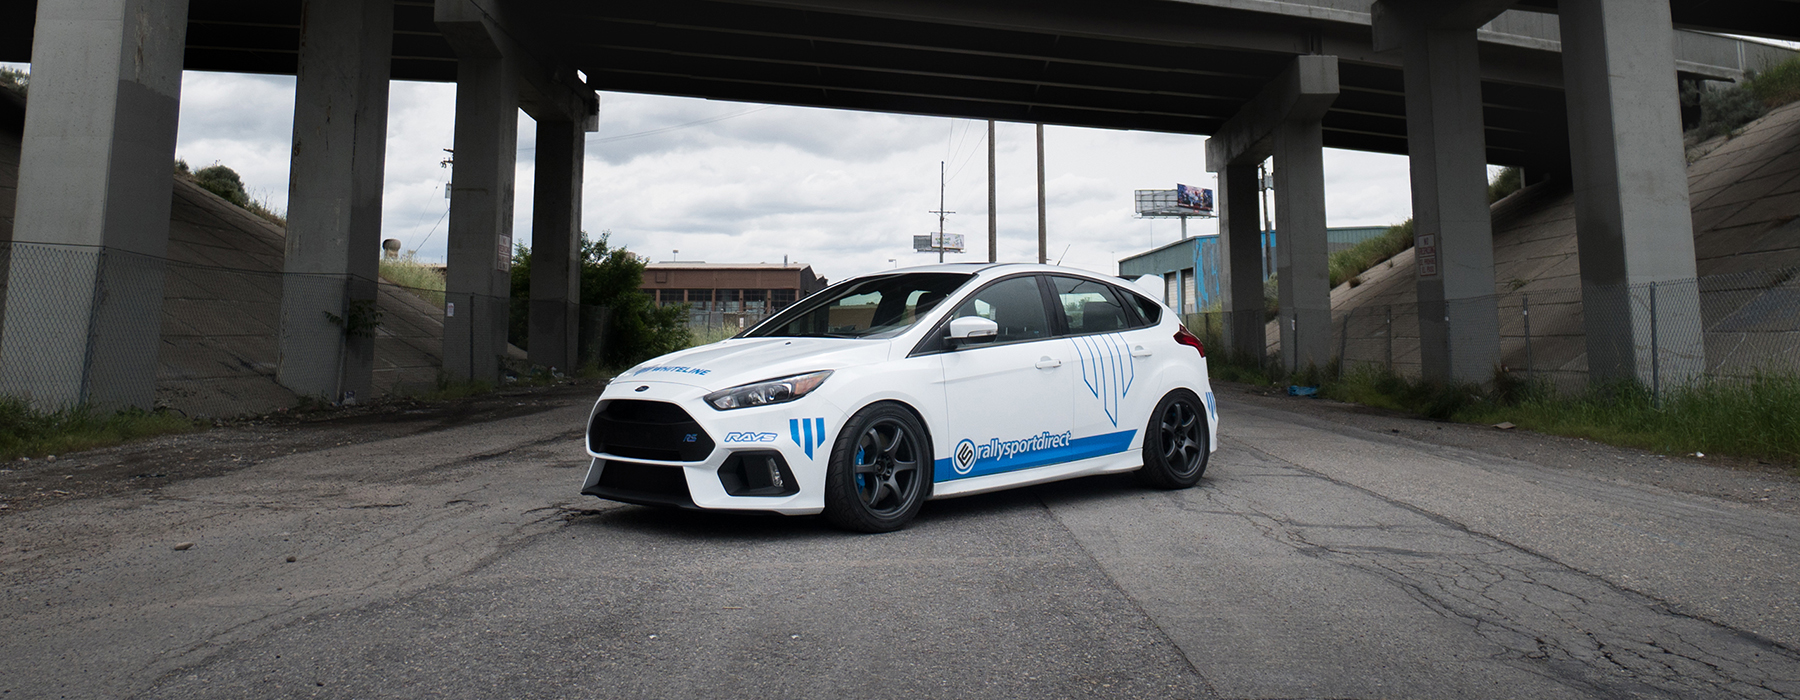 2013 - 2018 Ford Focus ST/RS Mods | Rallysport Direct